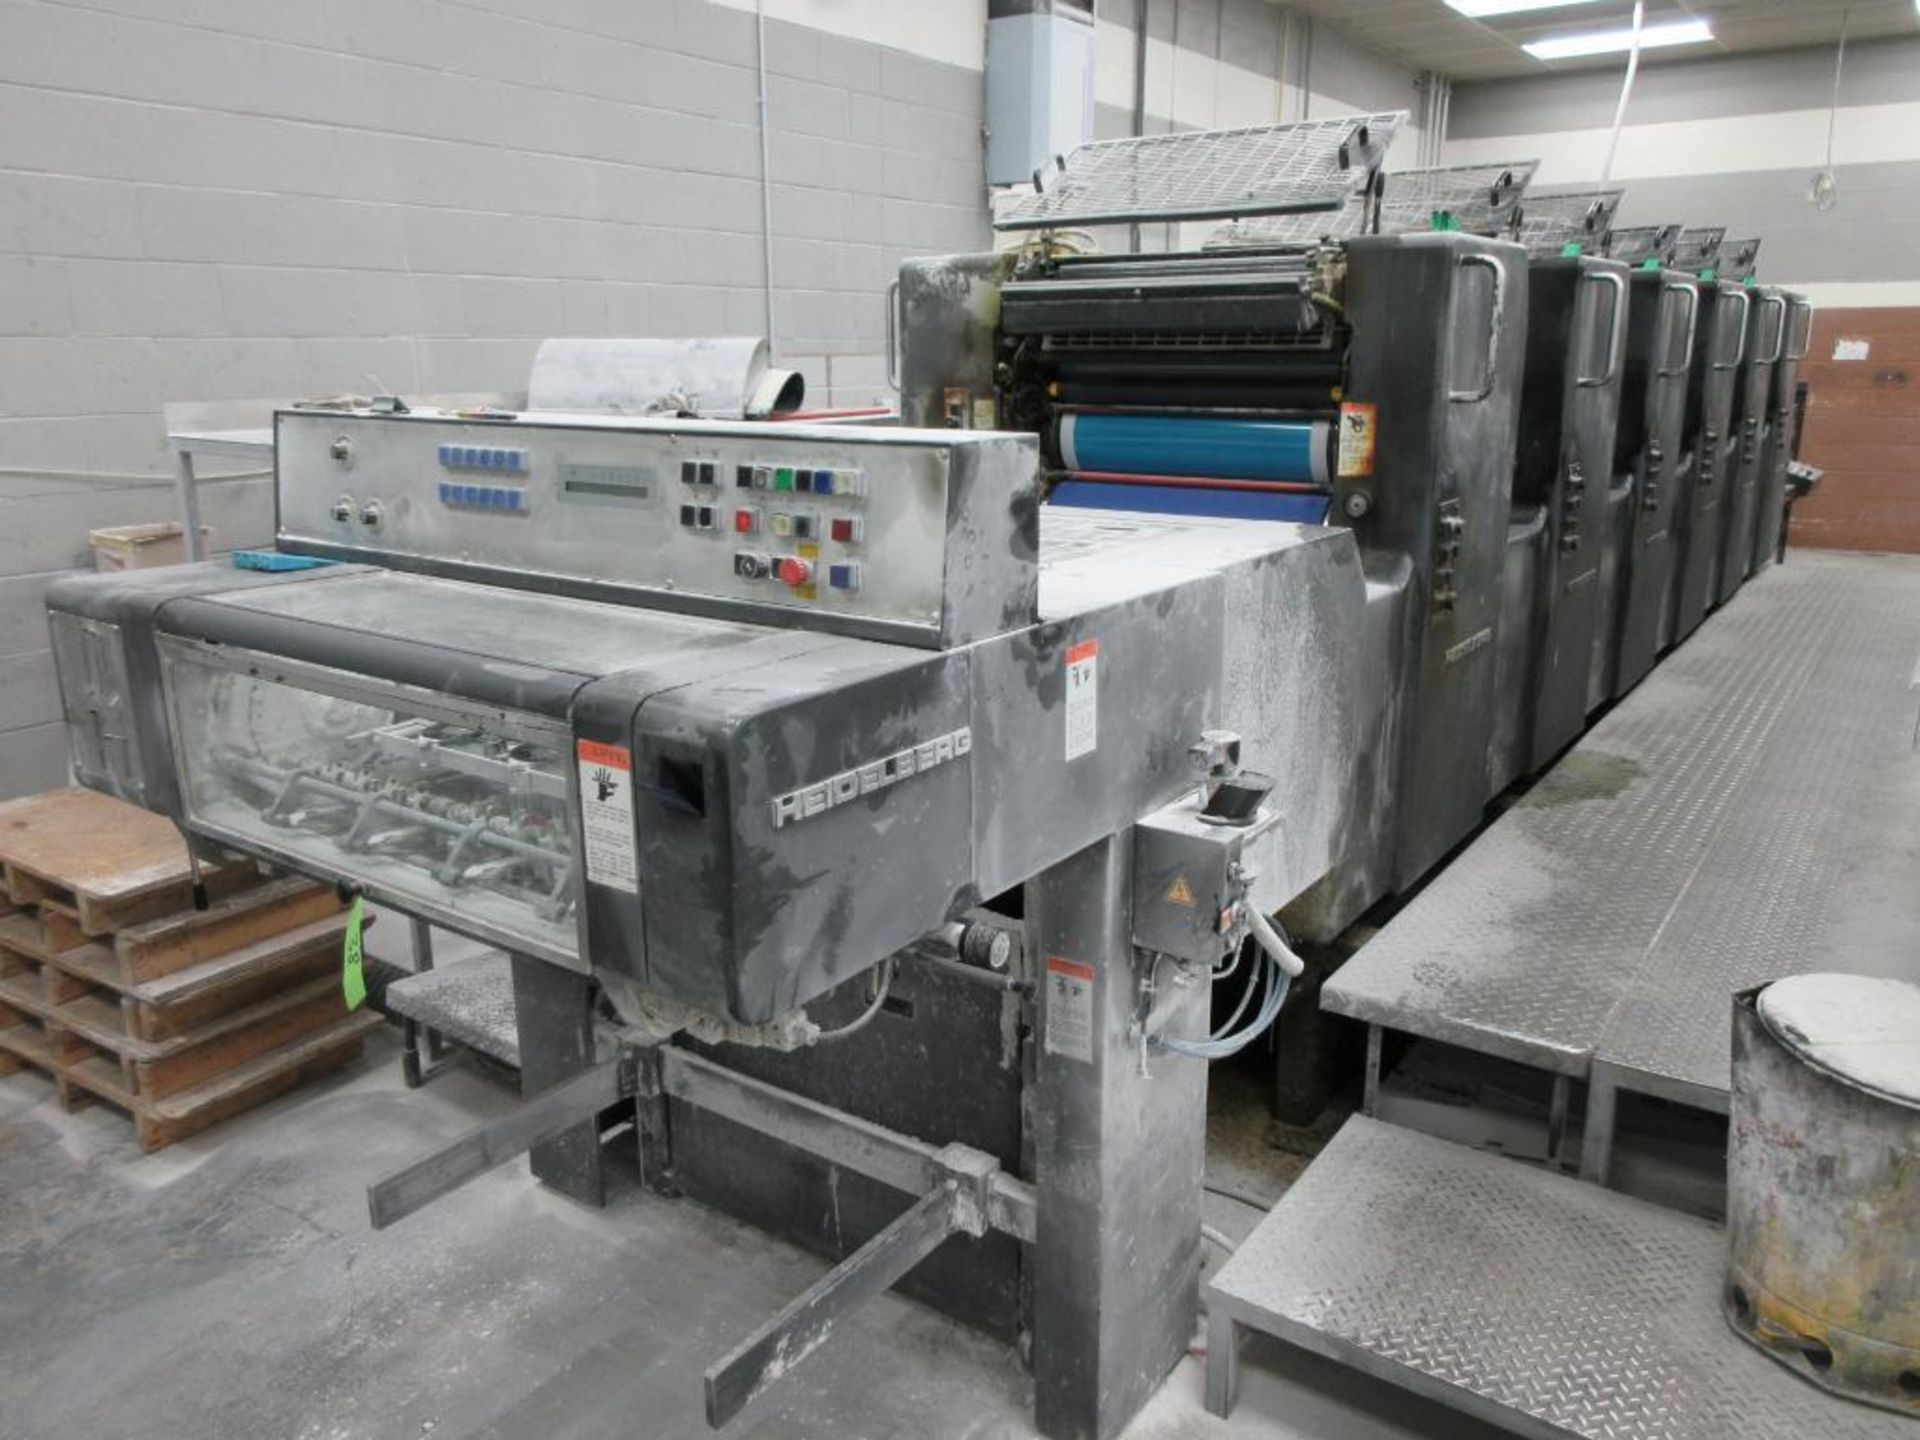 HEIDELBERG MOSP-H 19 x 25_, 6 color sheet fed offset perfecting press with high pile delivery, sn 61